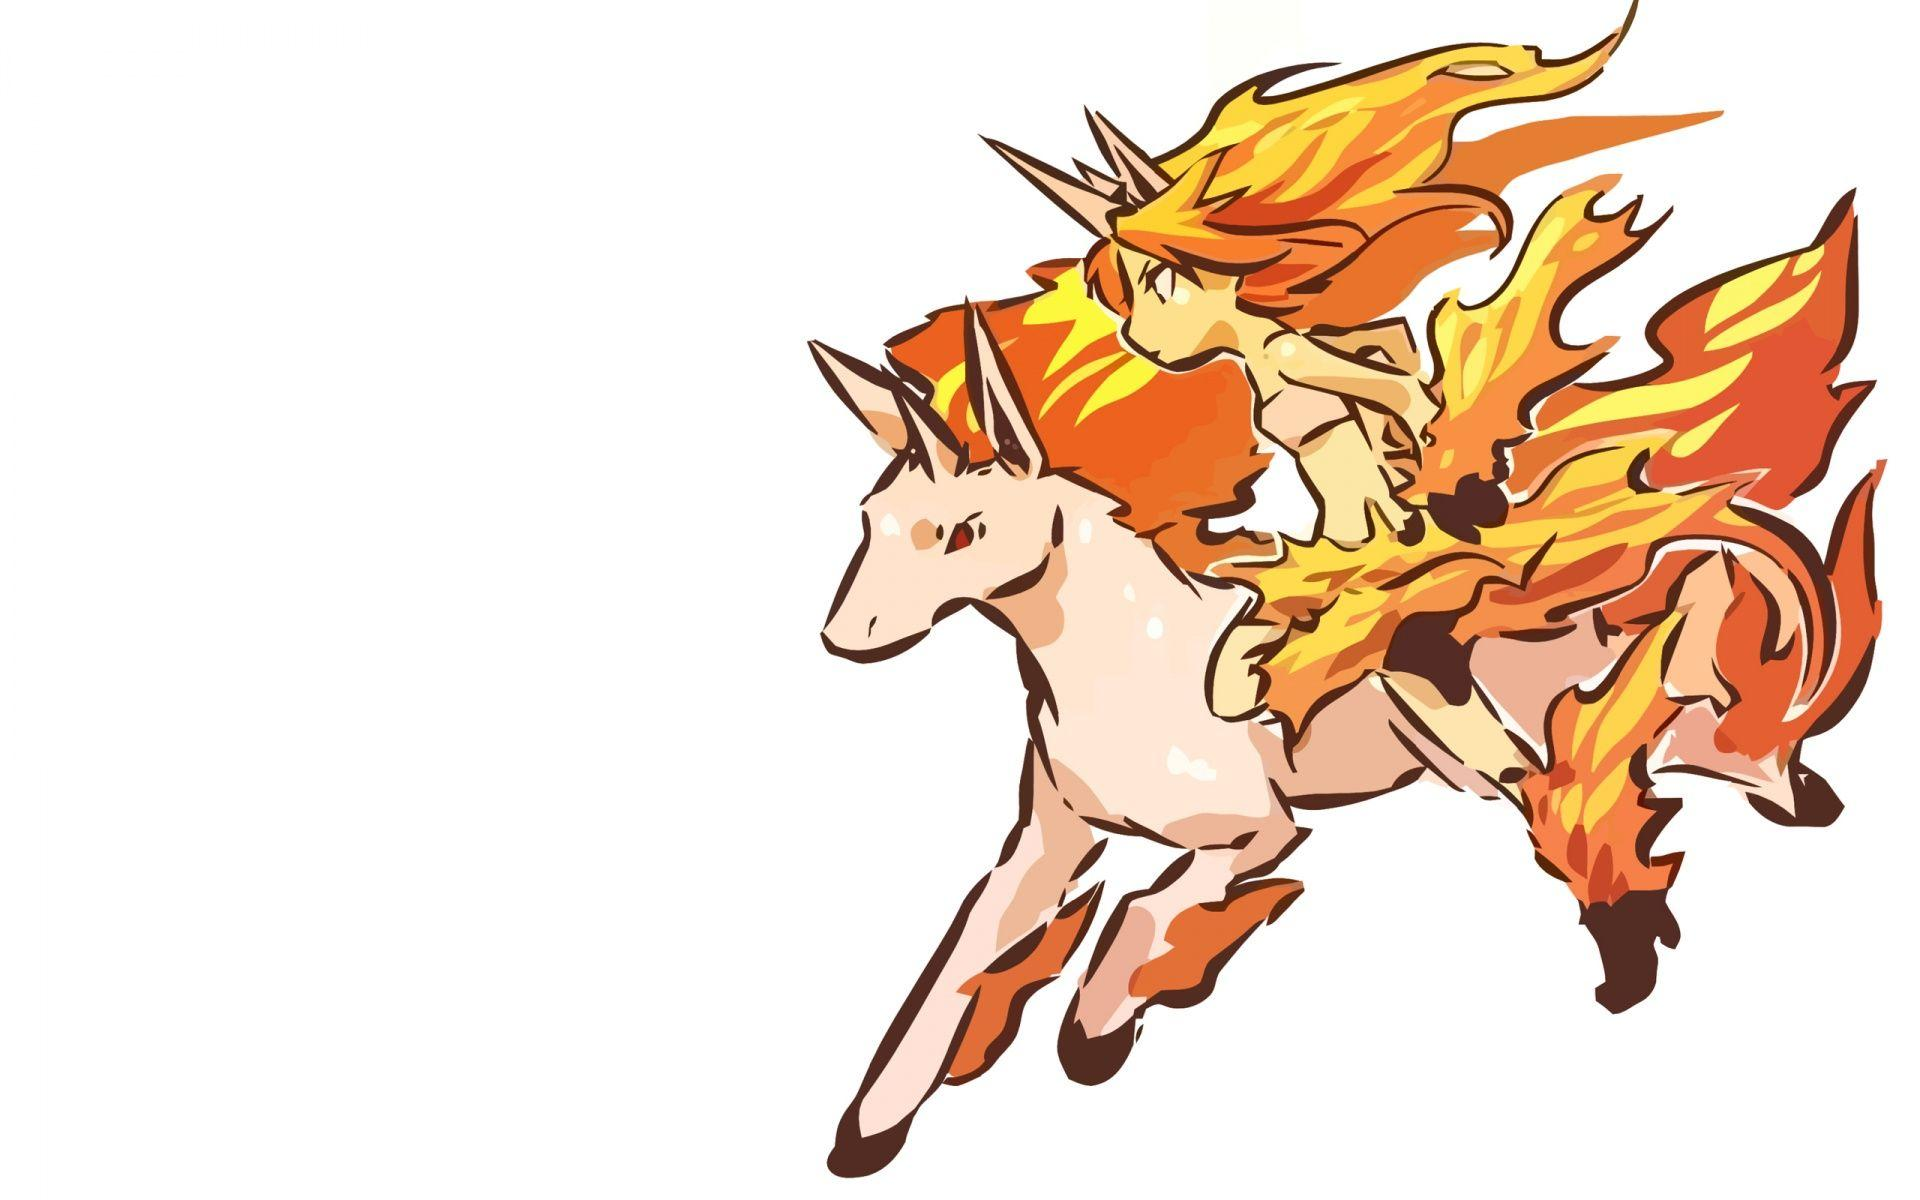 Rapidash - Pokémon - Wallpaper #206791 - Zerochan Anime Image Board